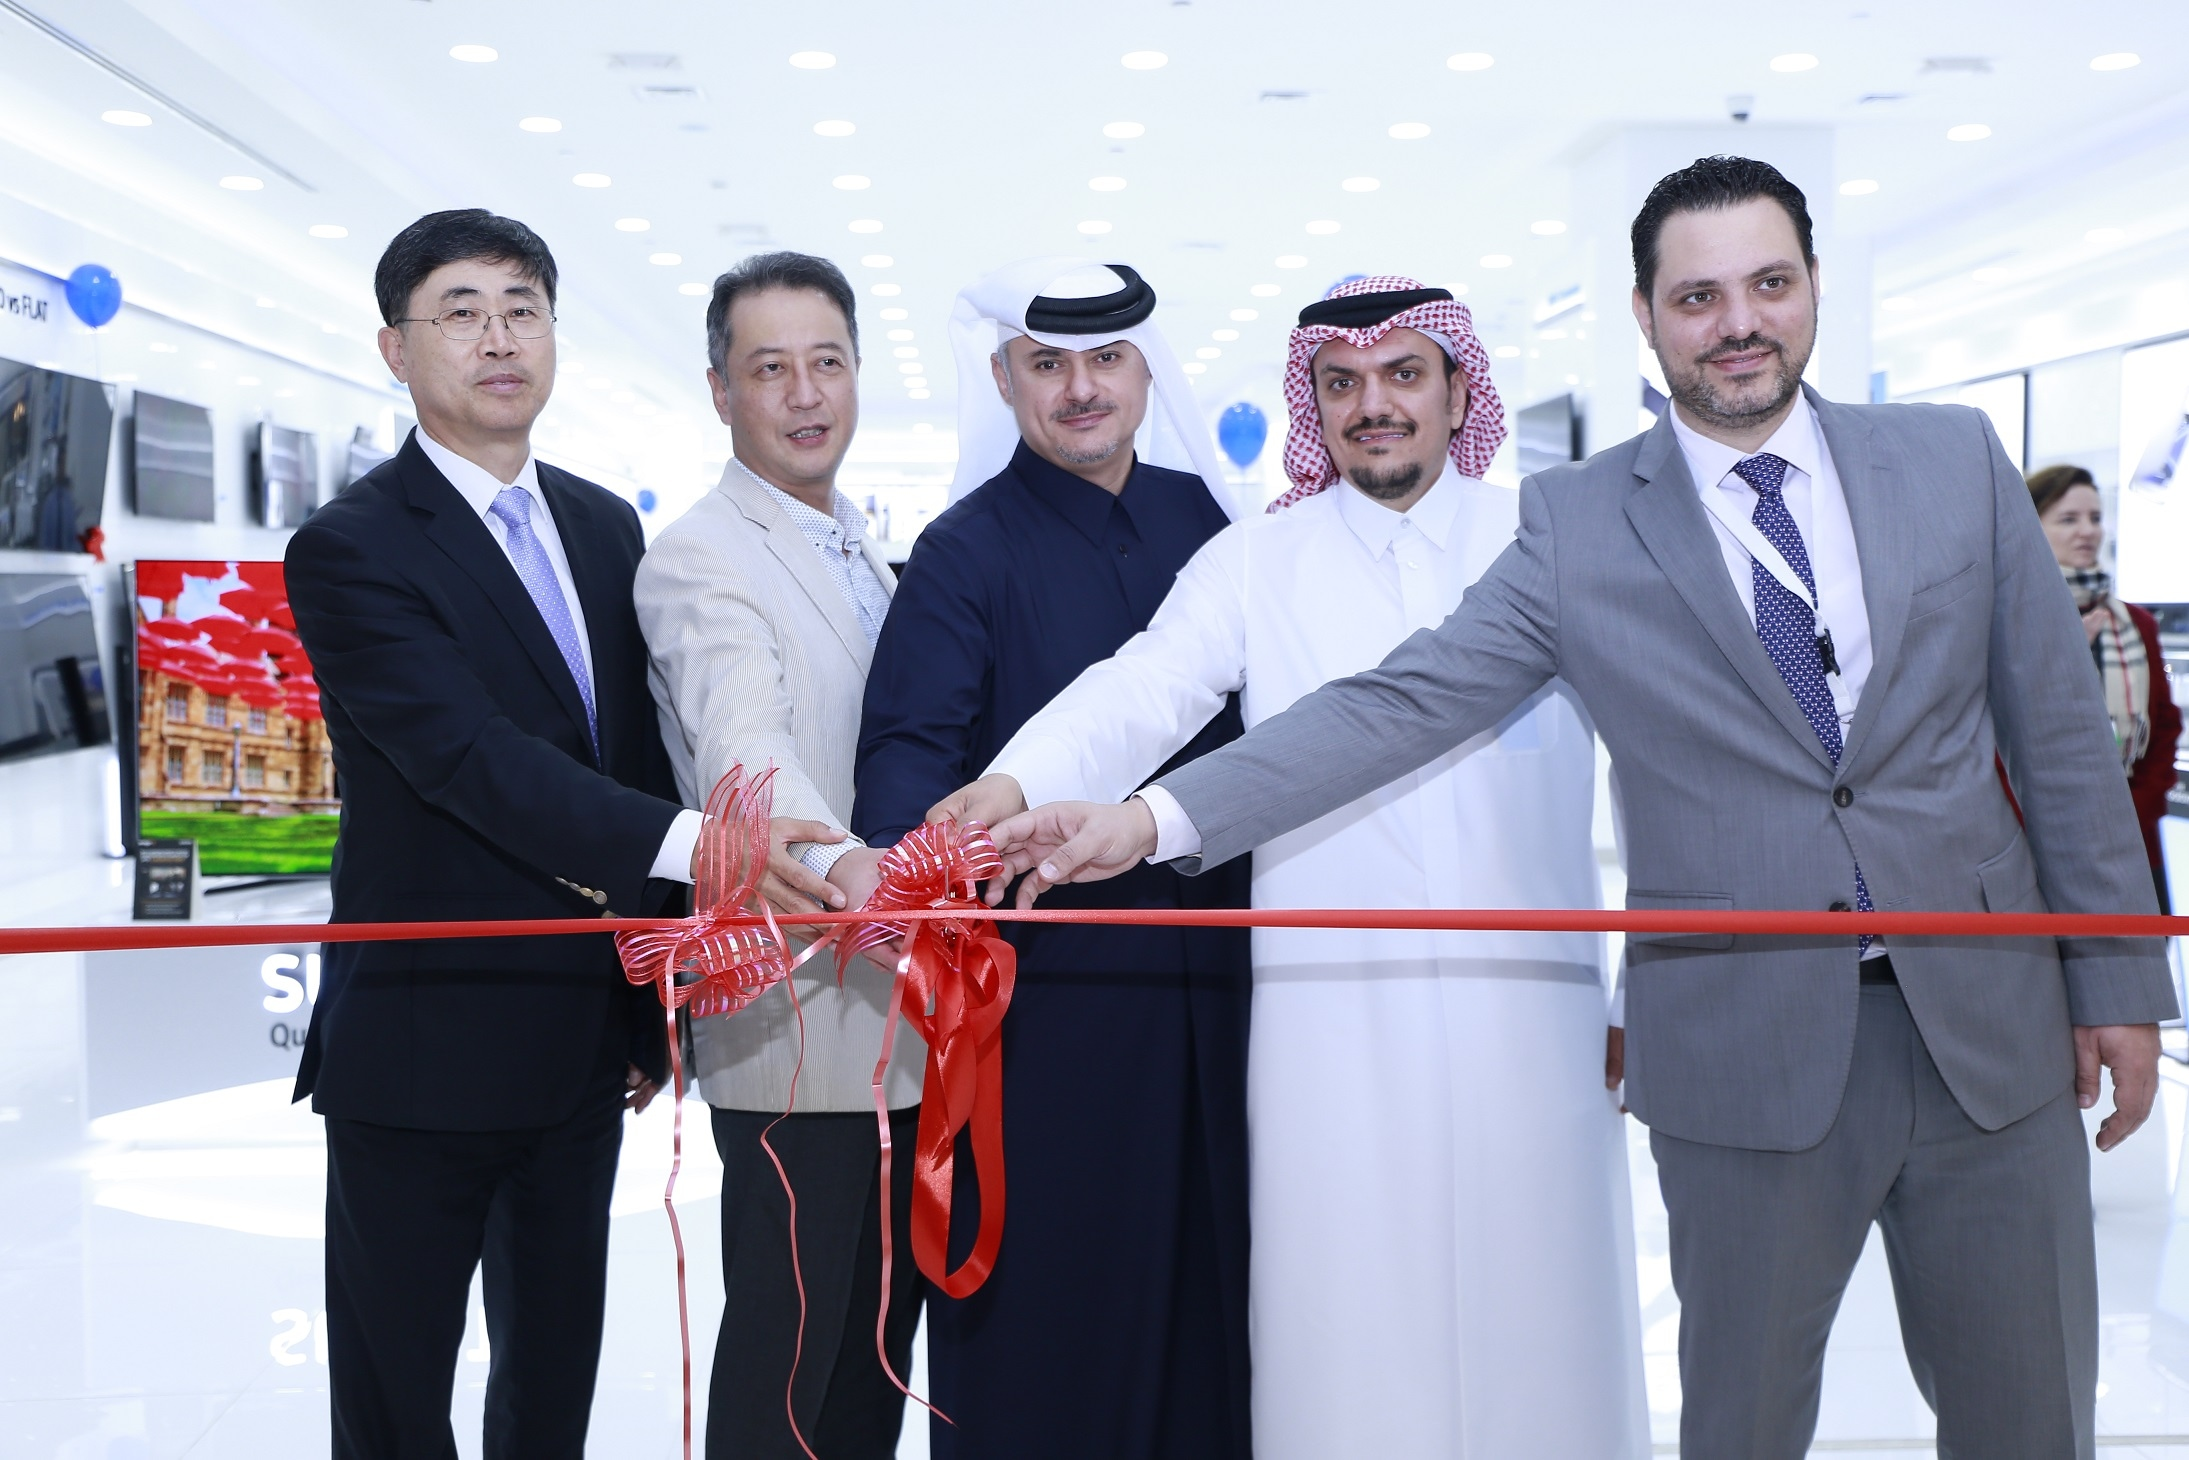 Samsung Launches First Brand Shop at Mall of Qatar 2